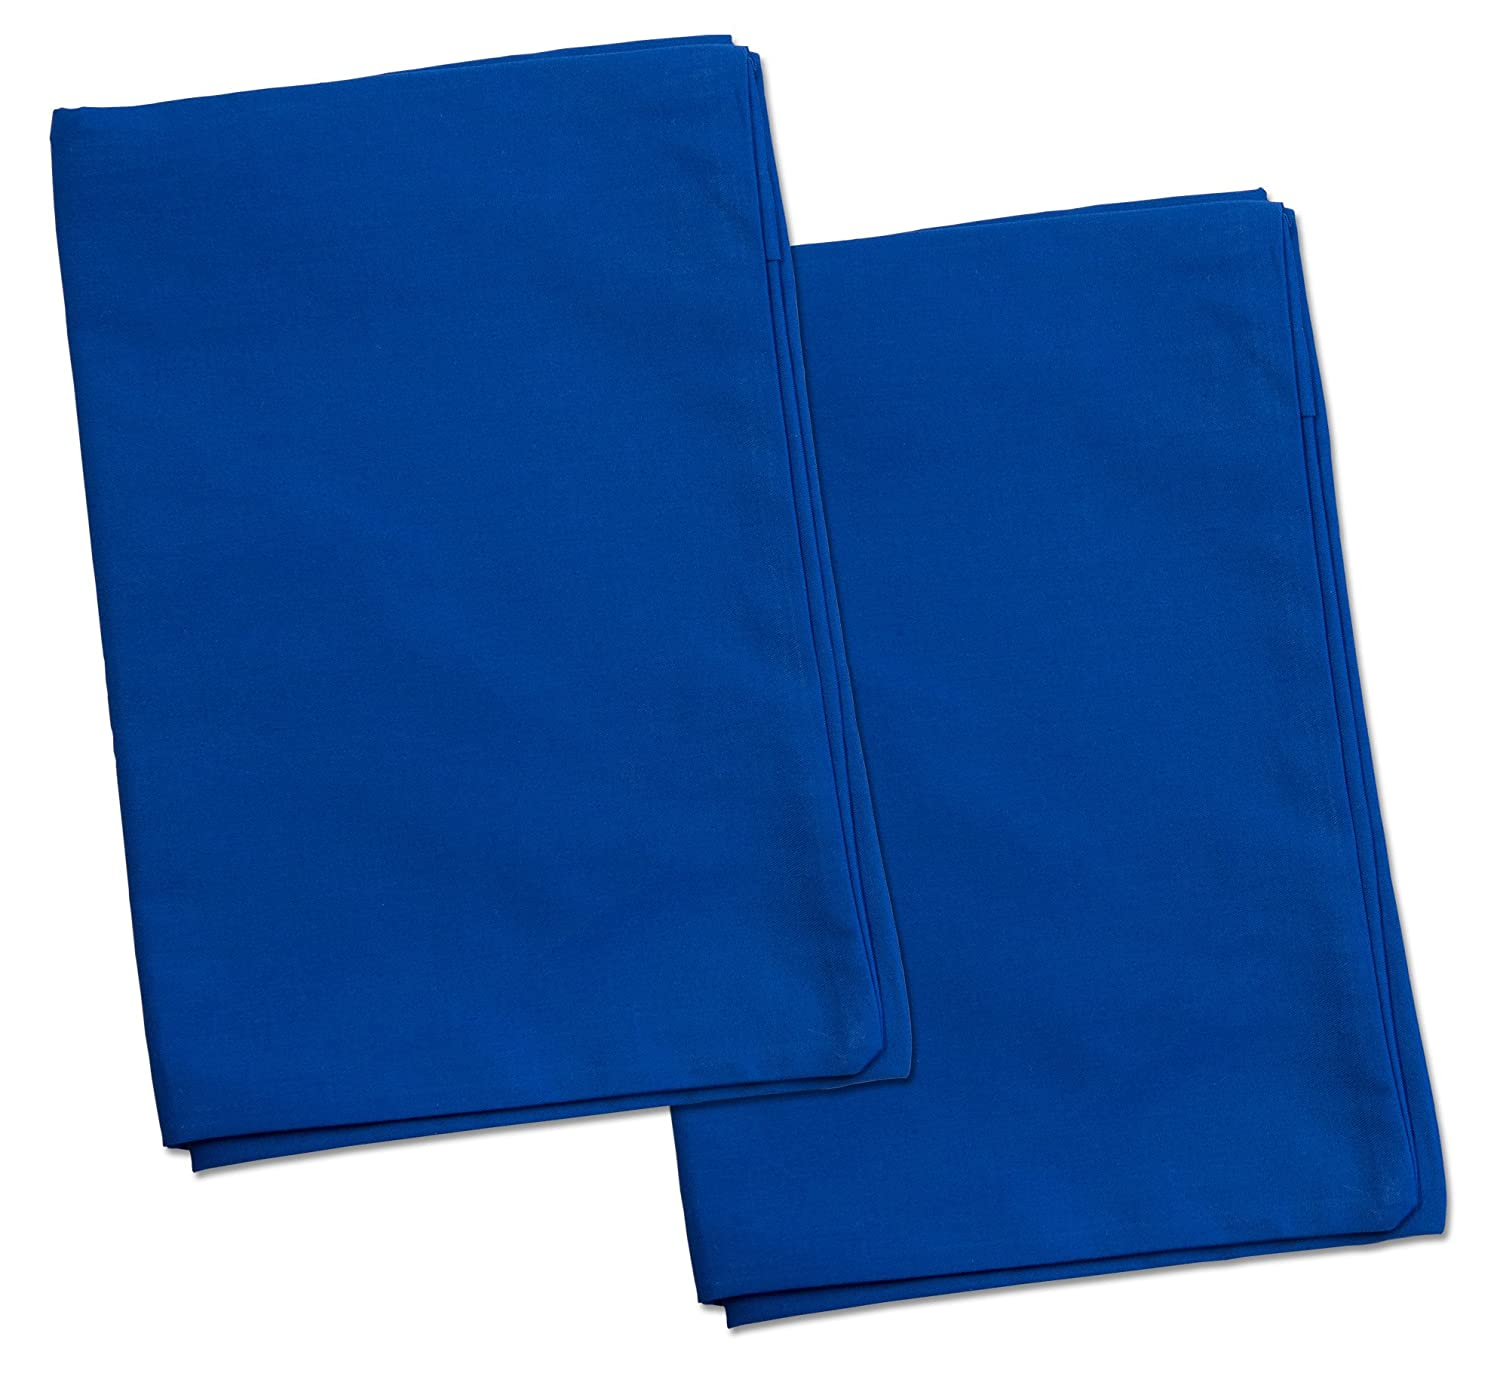 2 Blue Toddler Pillowcases - Envelope Style - For Pillows Sized 13x18 and 14x19 - 100% Cotton With Percale Weave - Machine Washable - ZadisonJaxx ZacharyPaul Collection - 2 Pack Zadisonjaxx Pillow ZJTPC-ZPC-BP2P